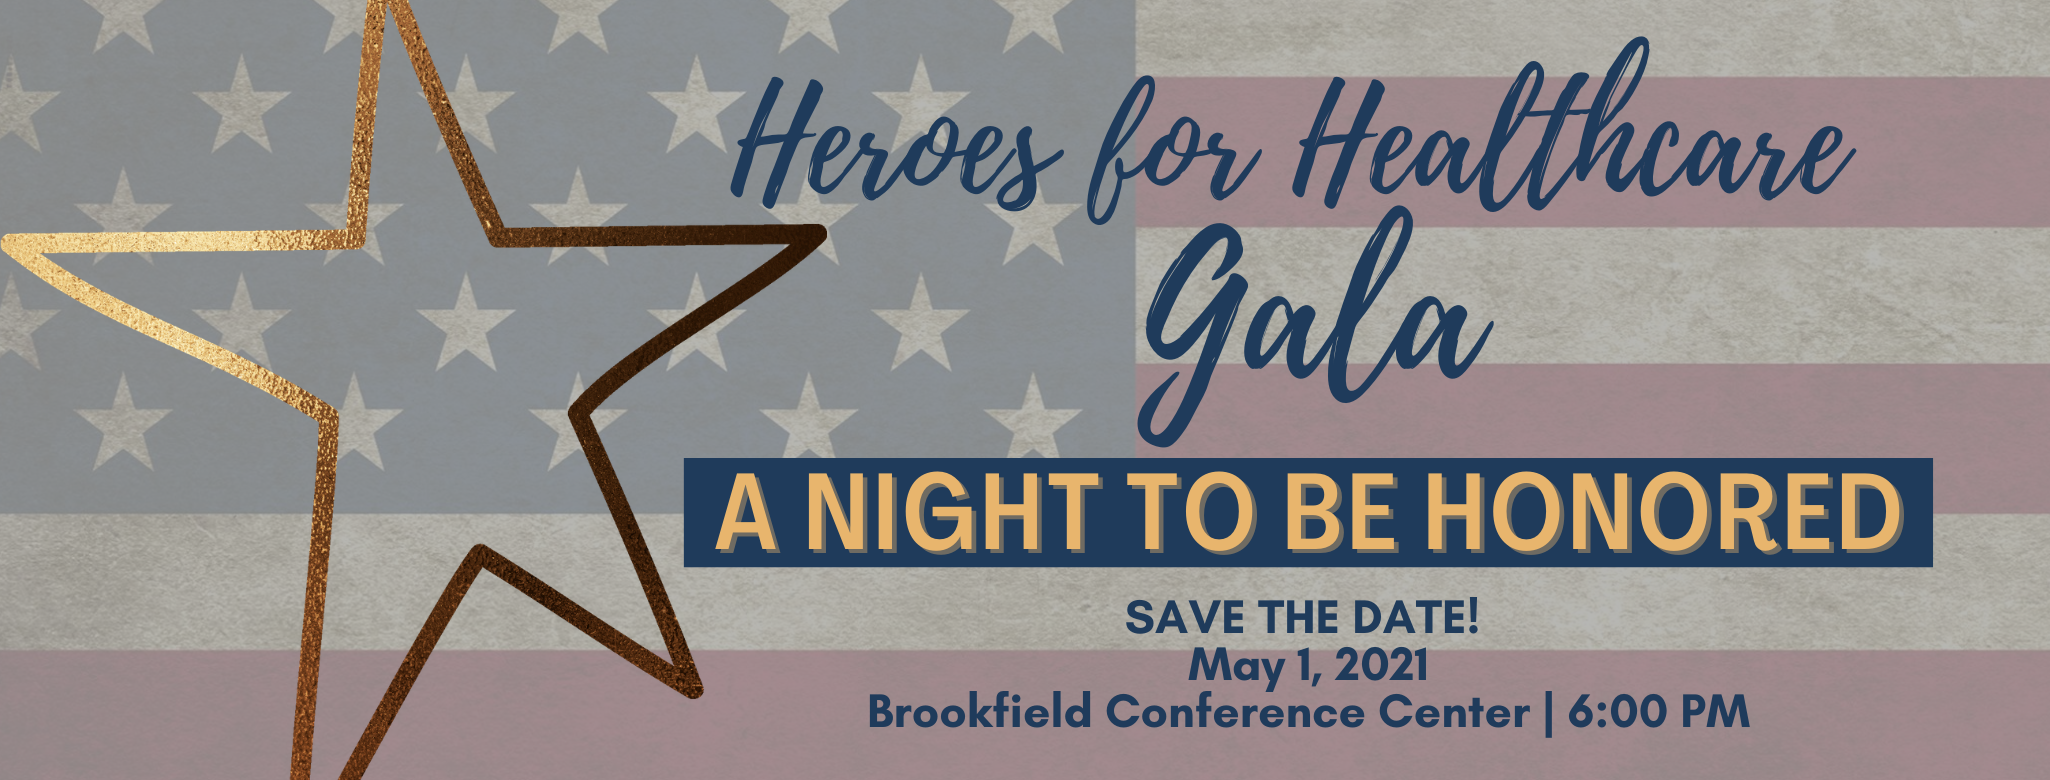 Heroes for Healthcare Gale A Night to be Honored (13)